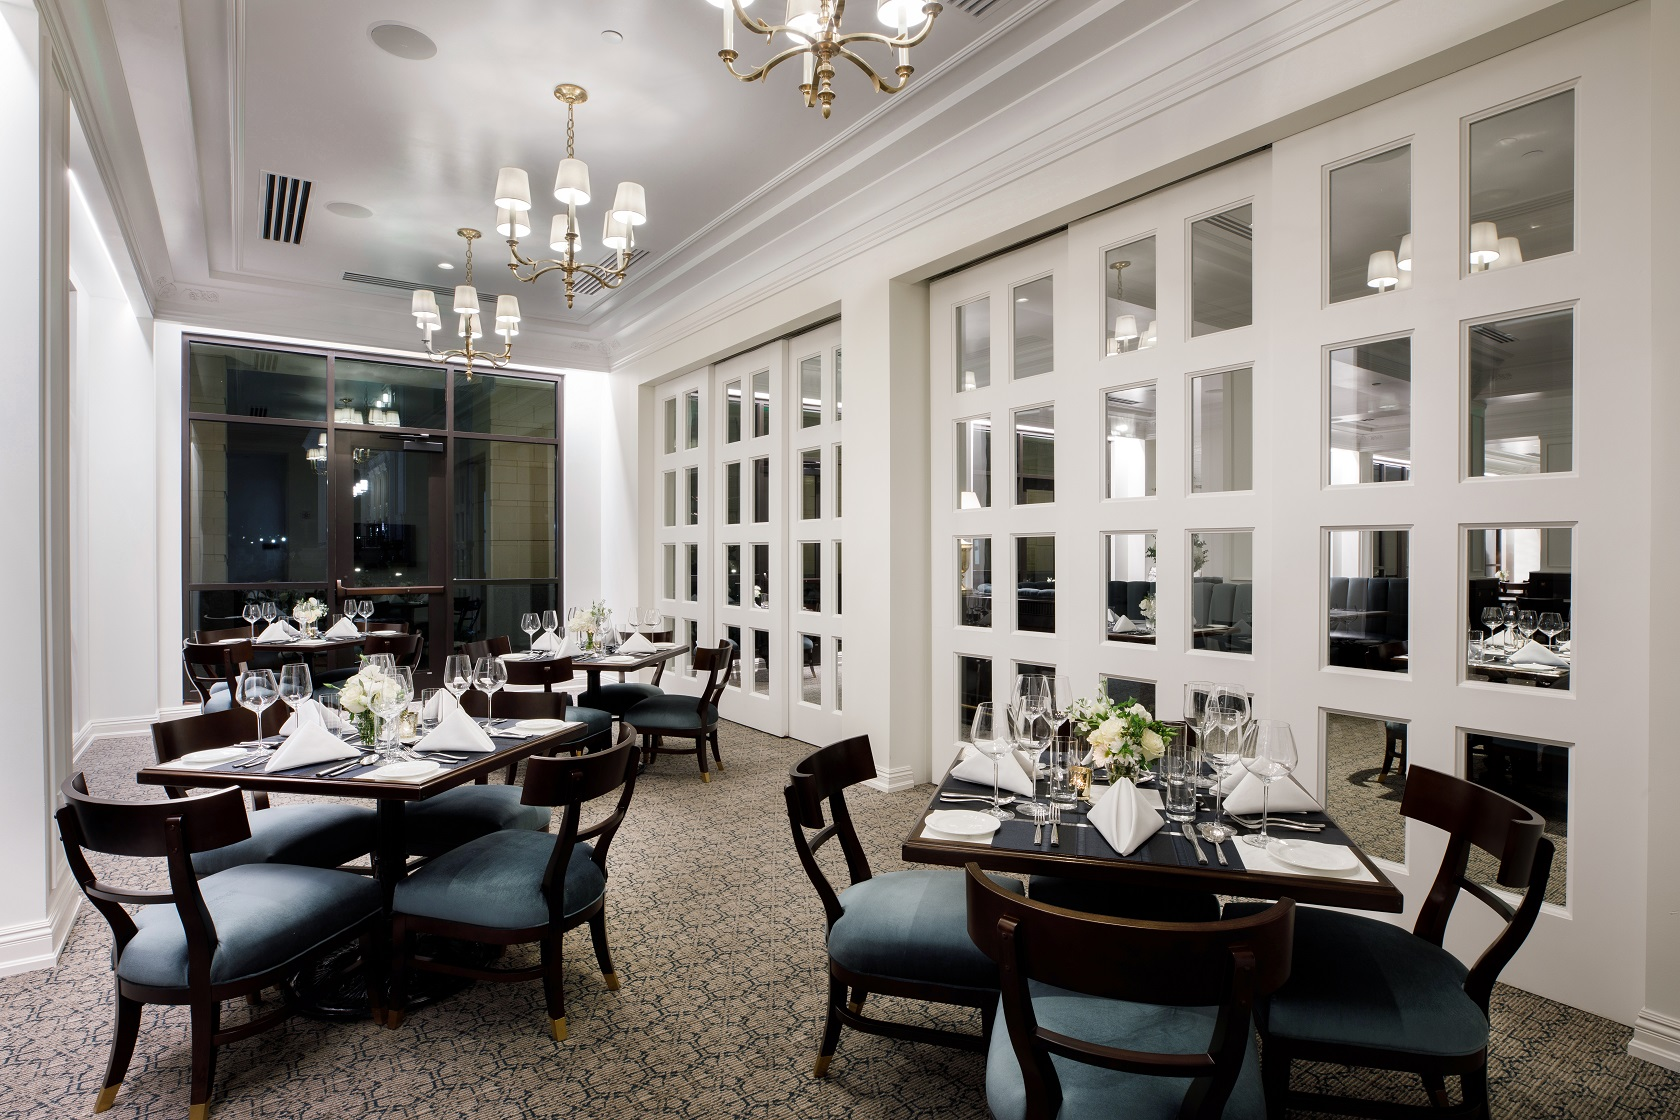 large white room with light fixtures on the ceiling and dark tables and chairs